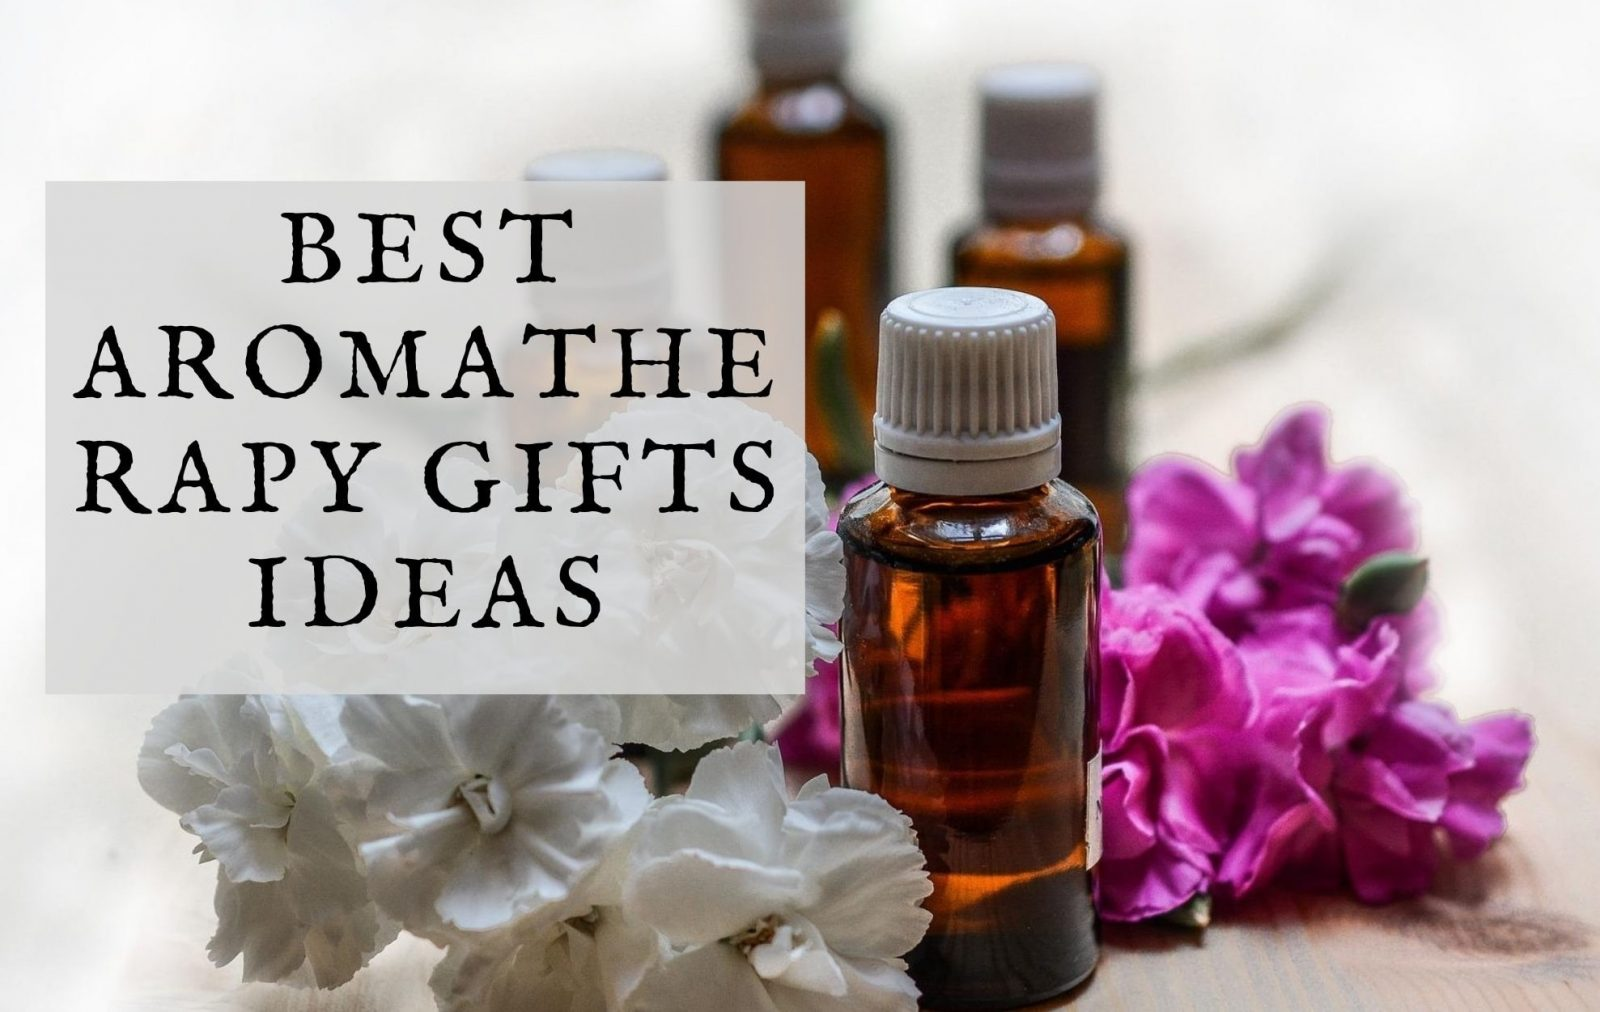 Best Aromatherapy Gifts Ideas